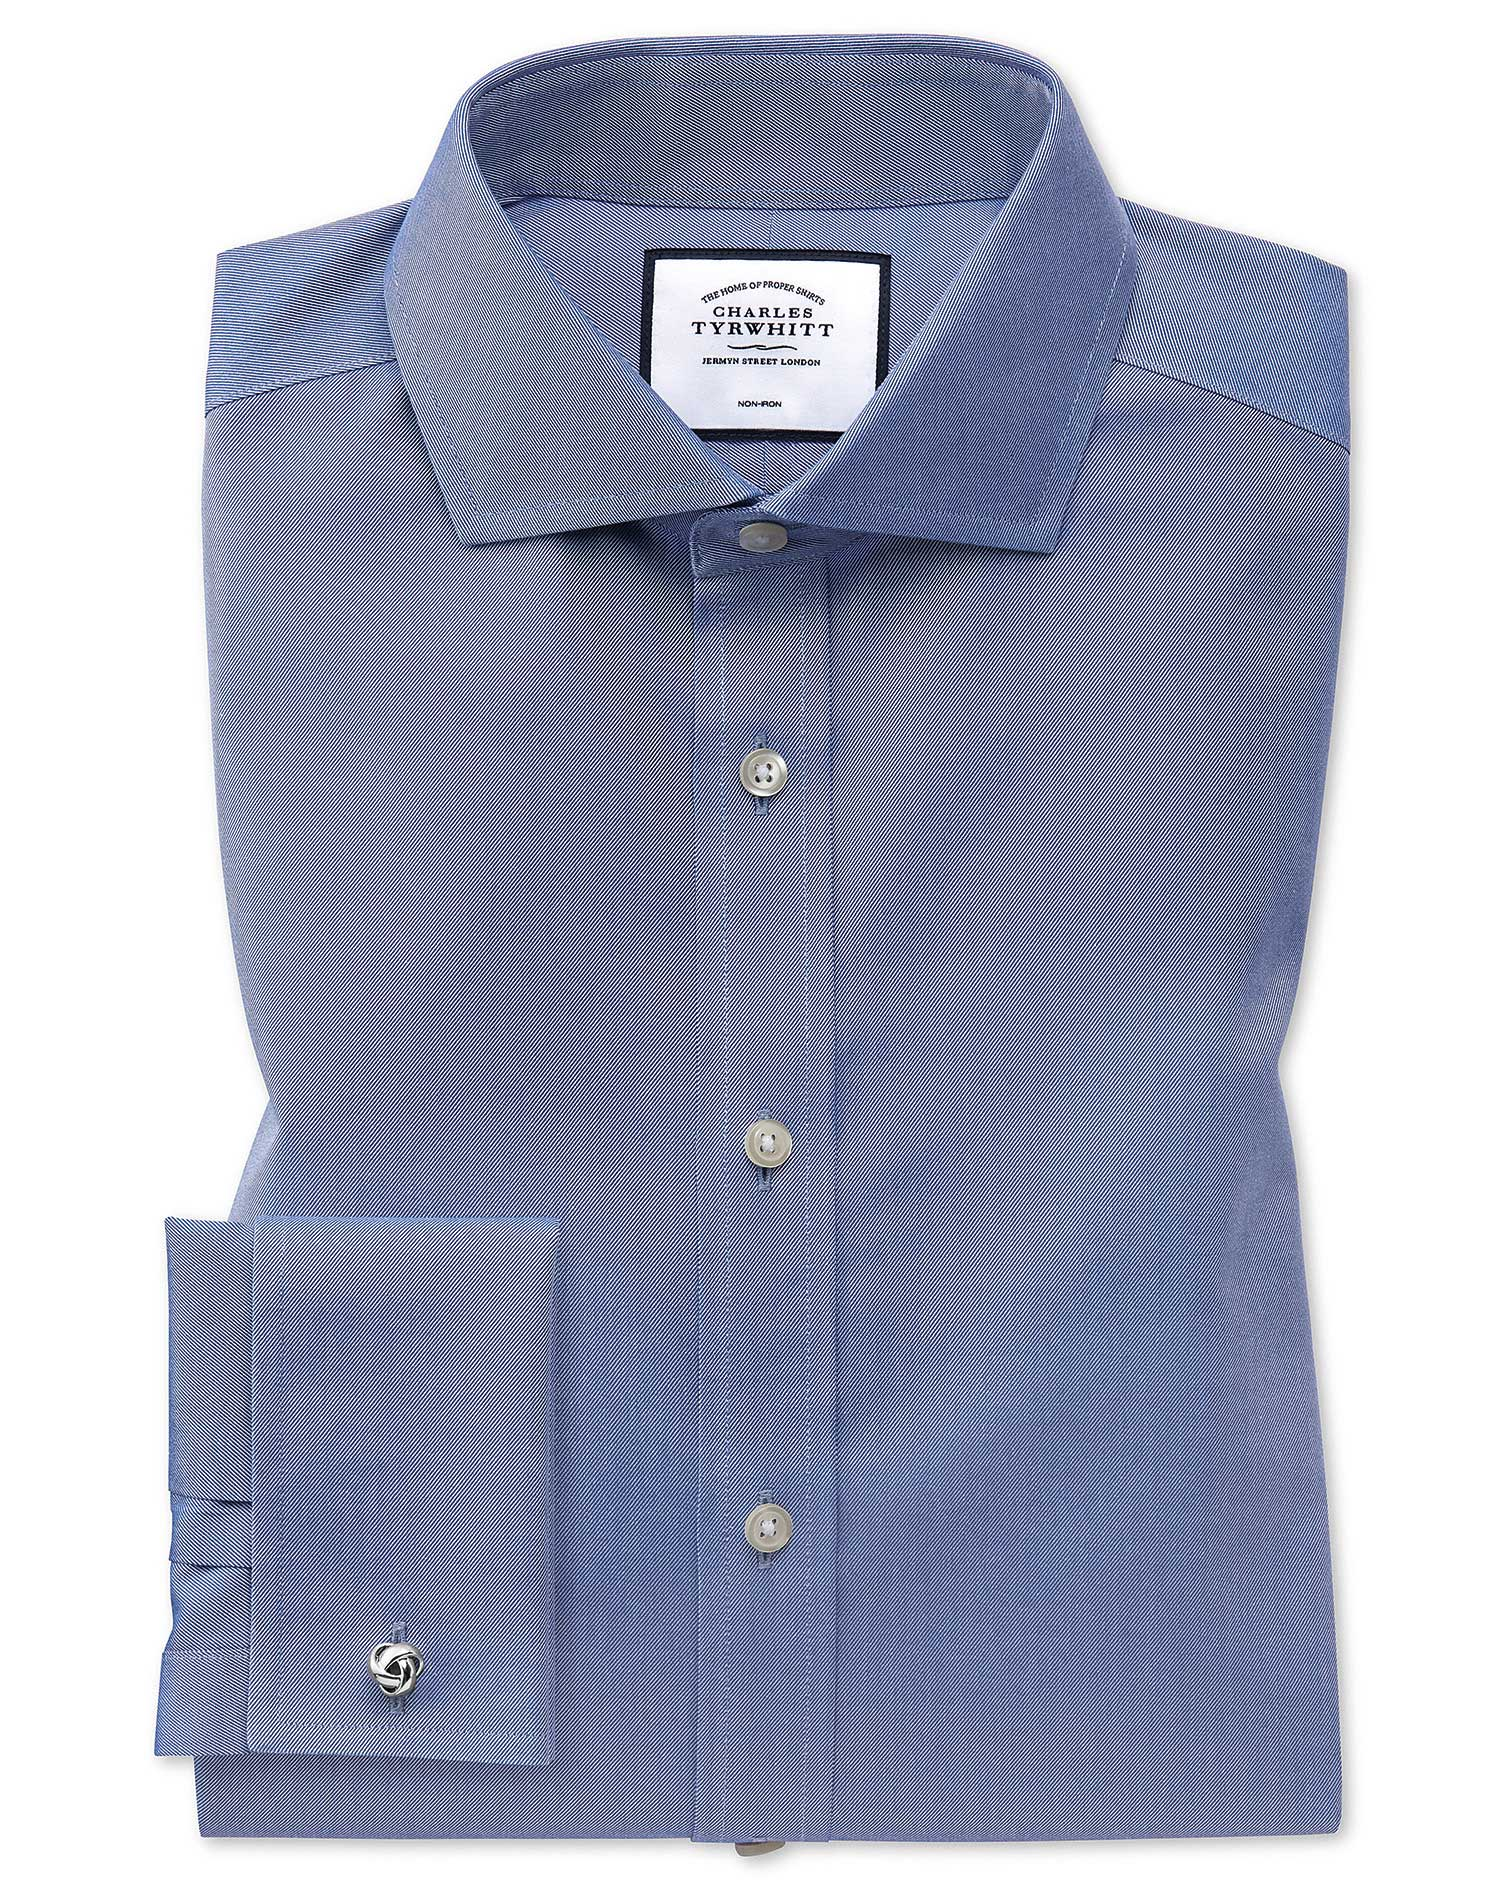 Slim Fit Cutaway Non-Iron Twill Mid Blue Cotton Formal Shirt Double Cuff Size 17/35 by Charles Tyrwh